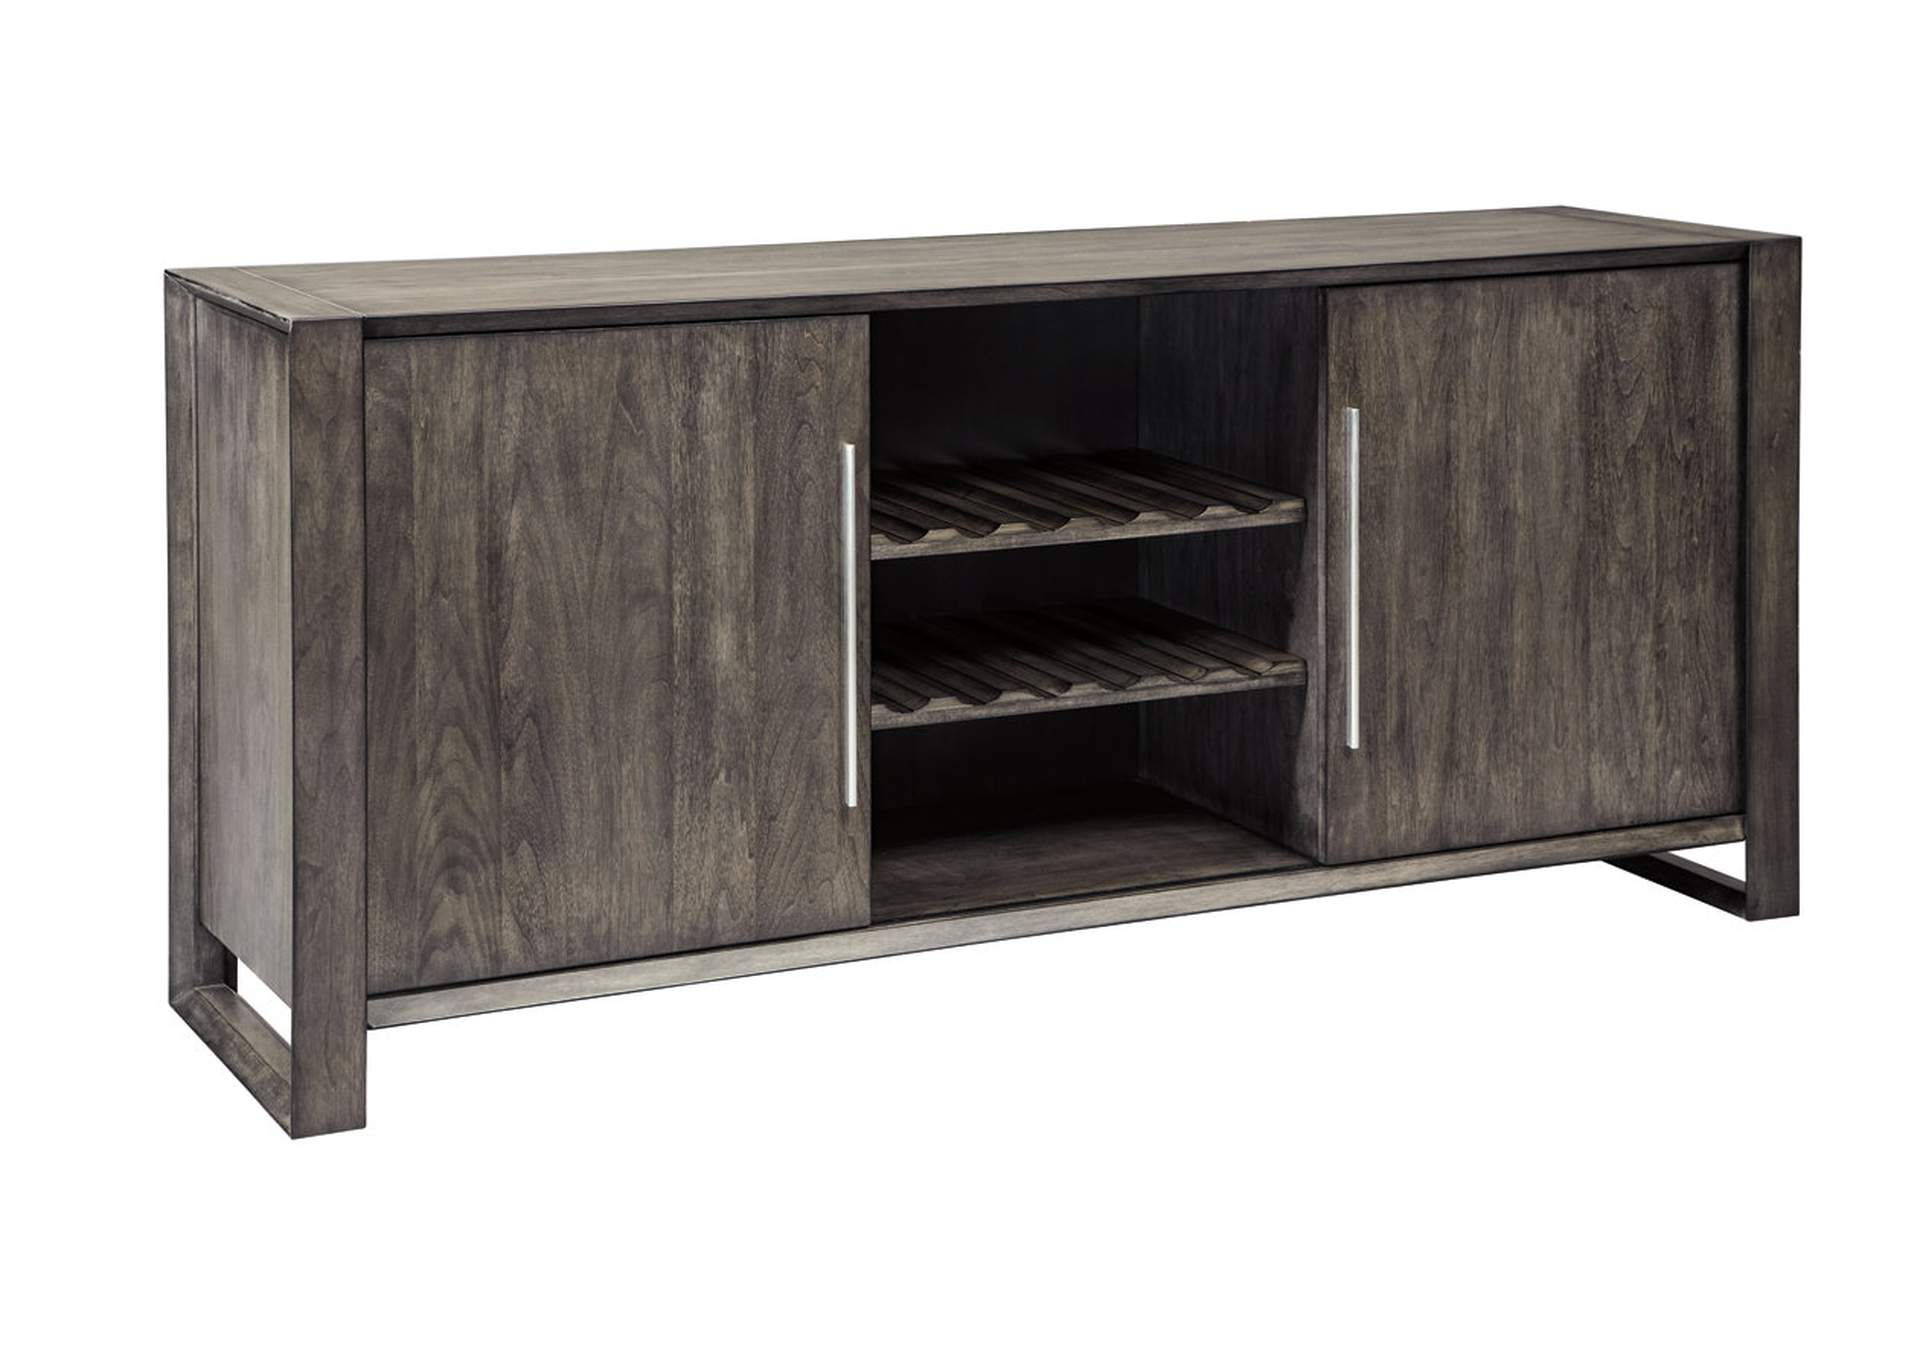 Furniture 4 Less Outlet Of Furniture 4 Less Outlet Chadoni Gray Dining Room Server